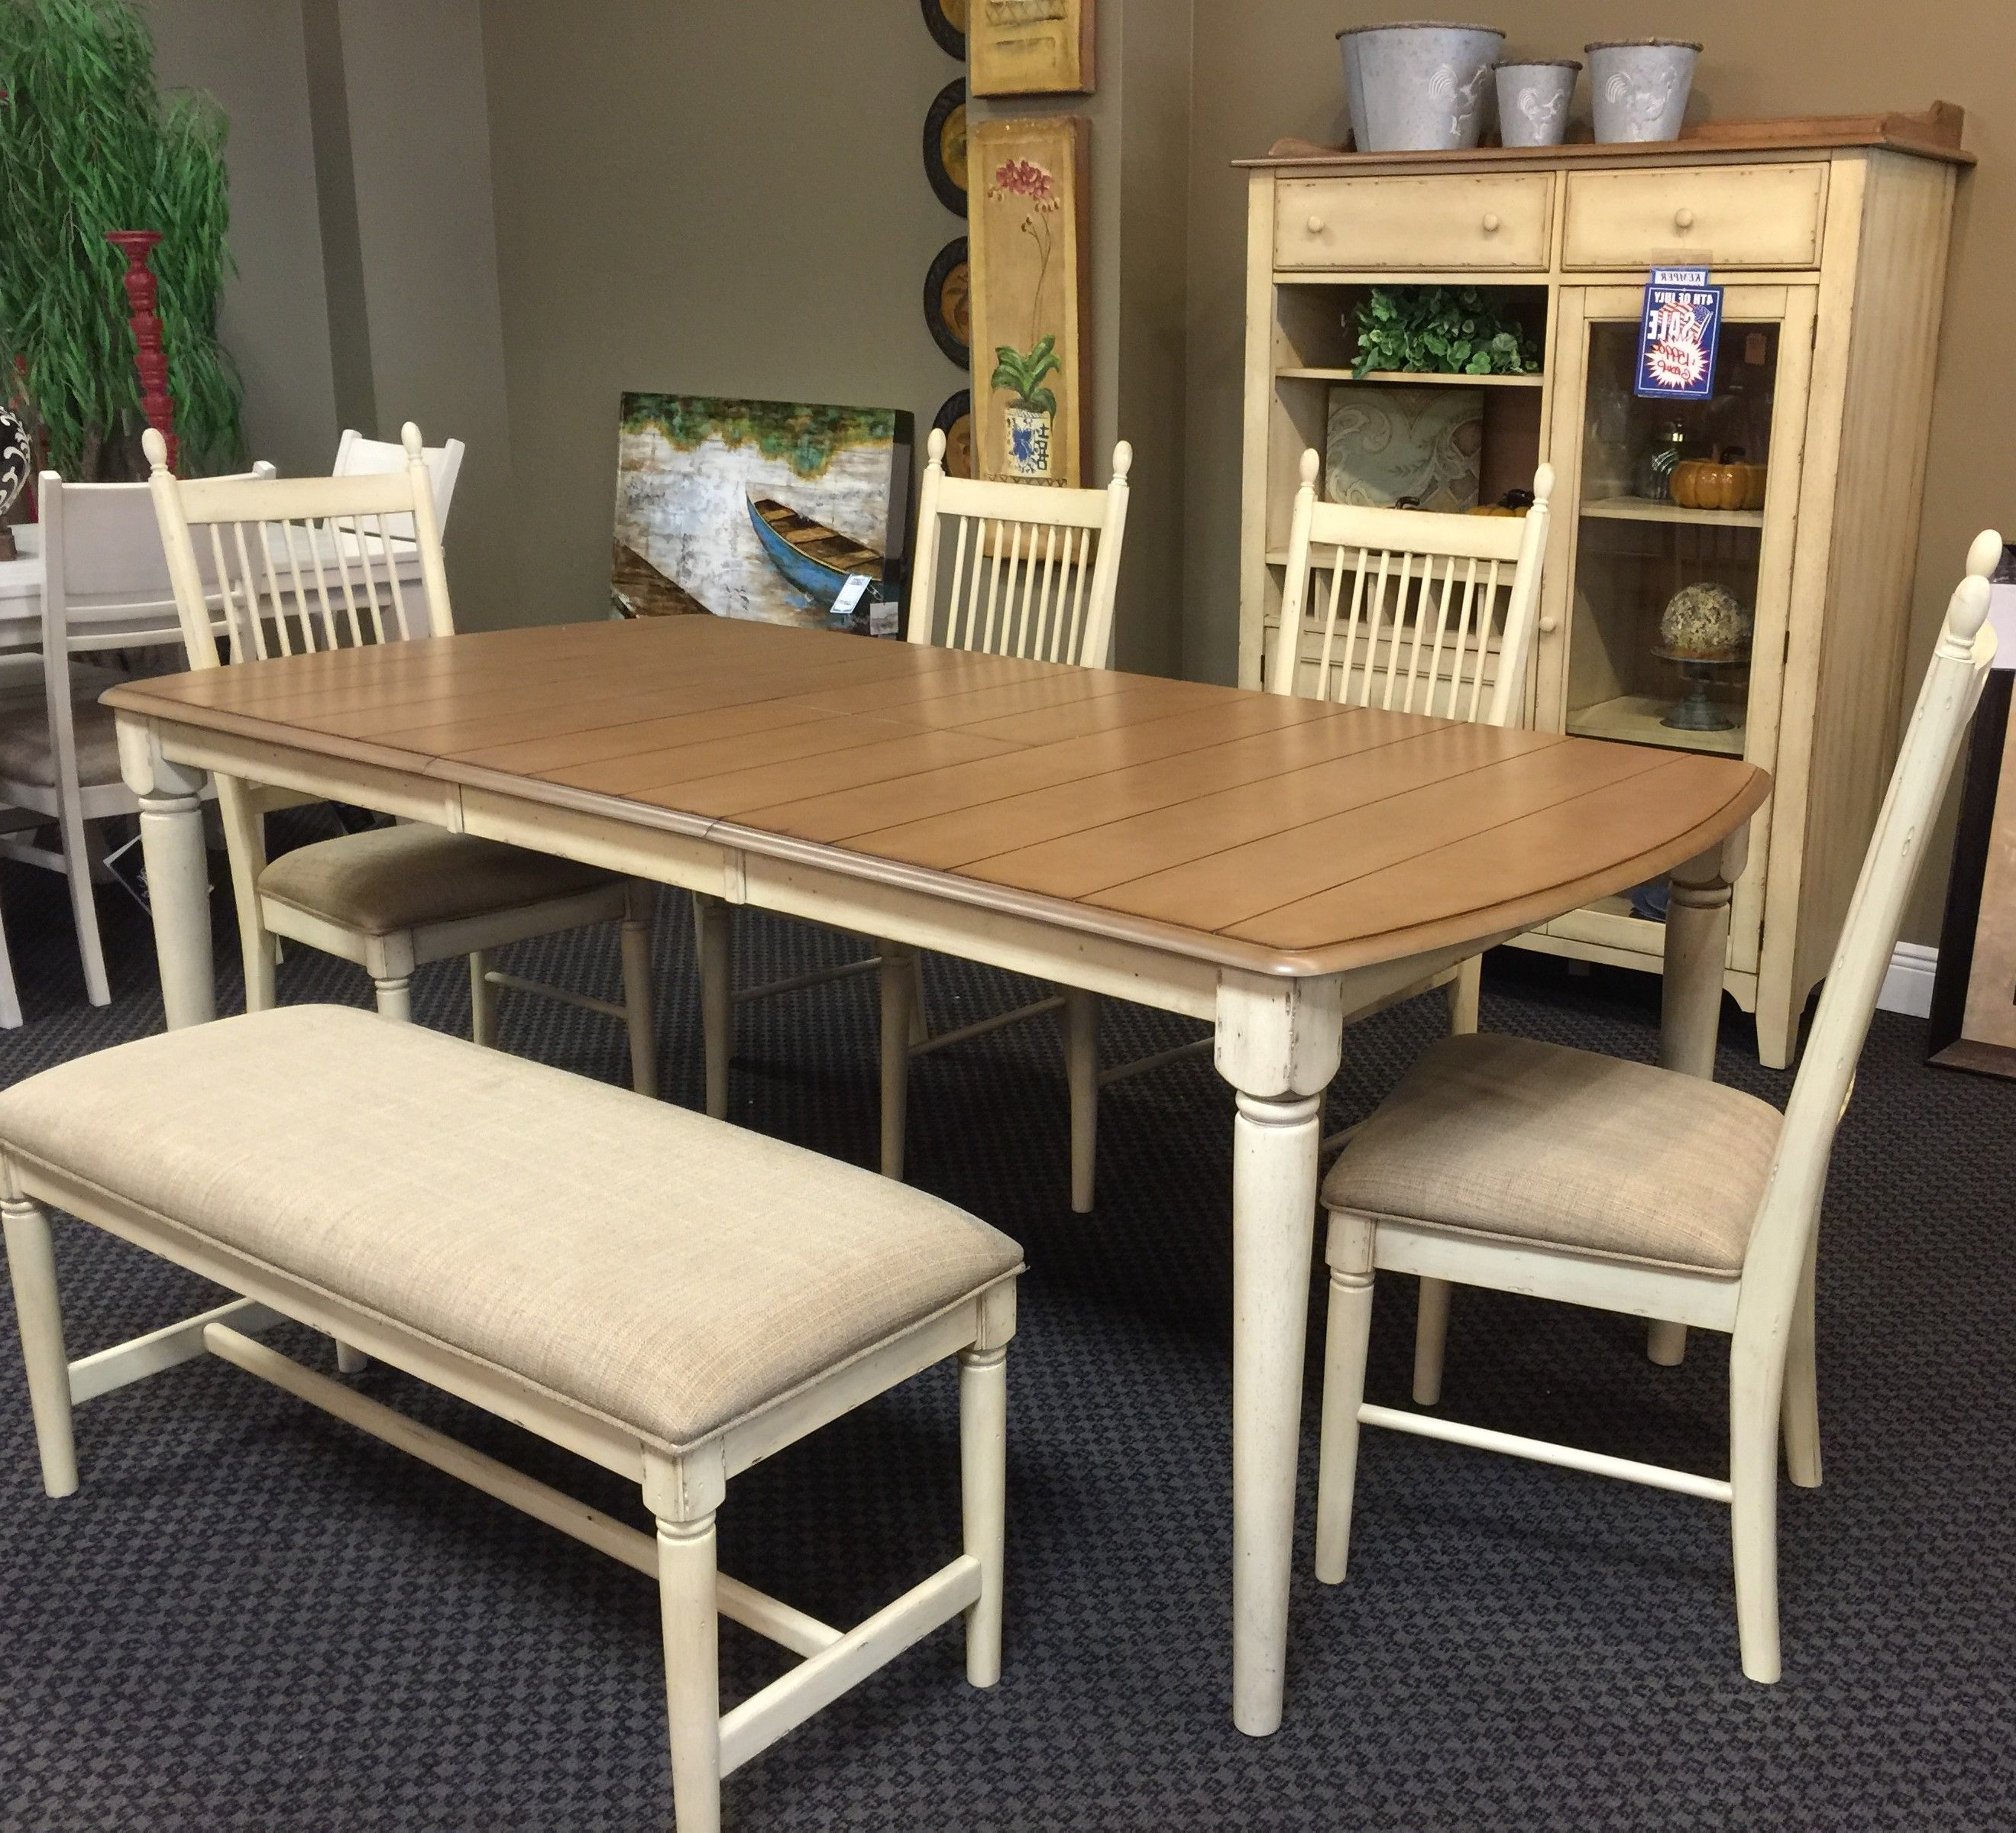 Liberty #157 Dining Table, Chairs, Bench, & Hutch (View 18 of 25)